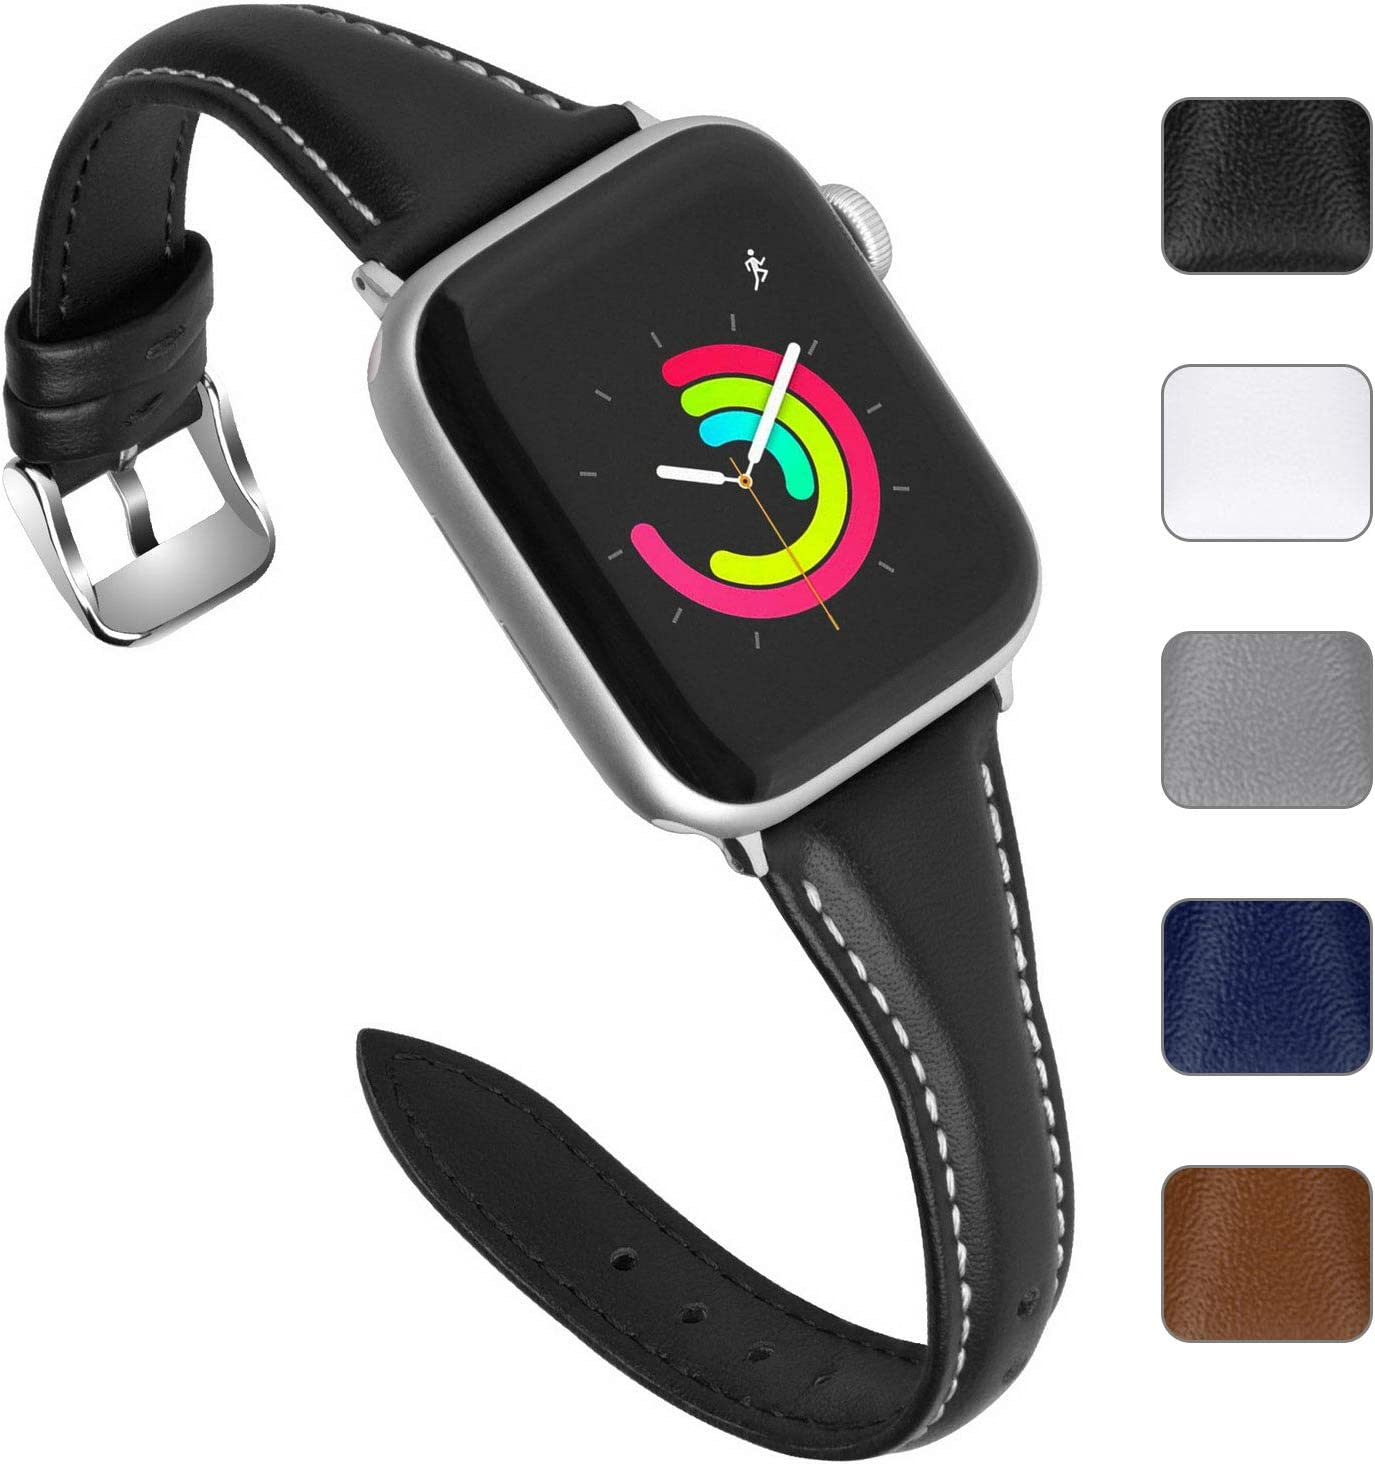 Fullmosa Leather Band Compatible Apple Watch 38mm/40mm/42mm/44mm, 5 Colors Sliim Strap for iWatch Band Series 5/4/3/2/1,Nike+, Edition, Sport